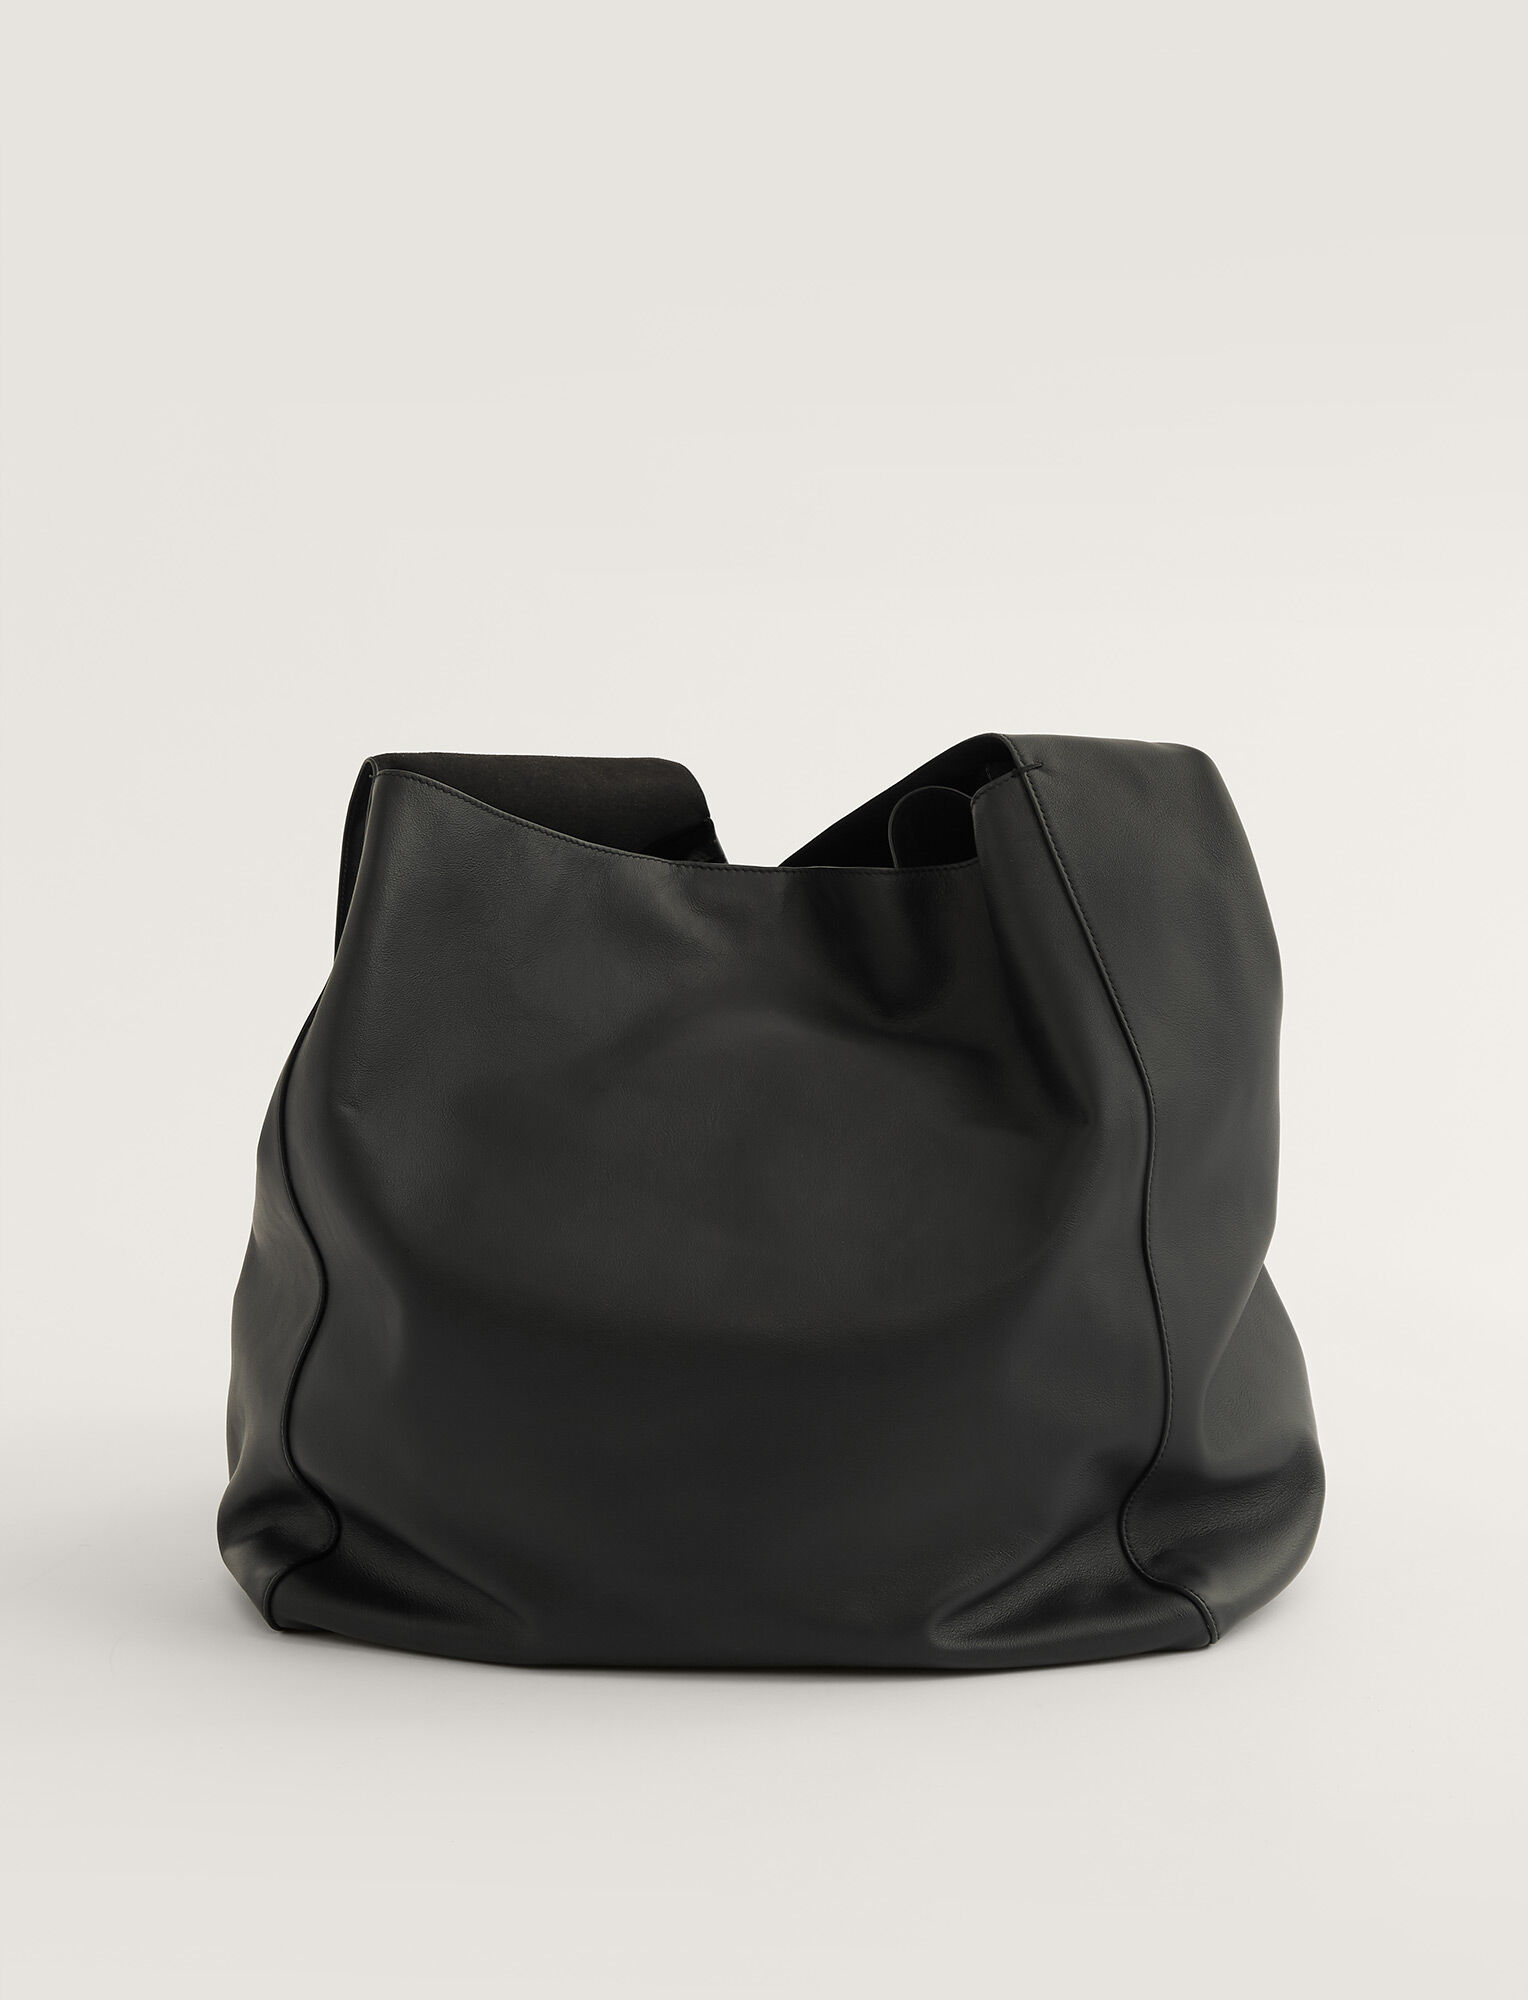 Joseph, Slouch XL Bag, in BLACK